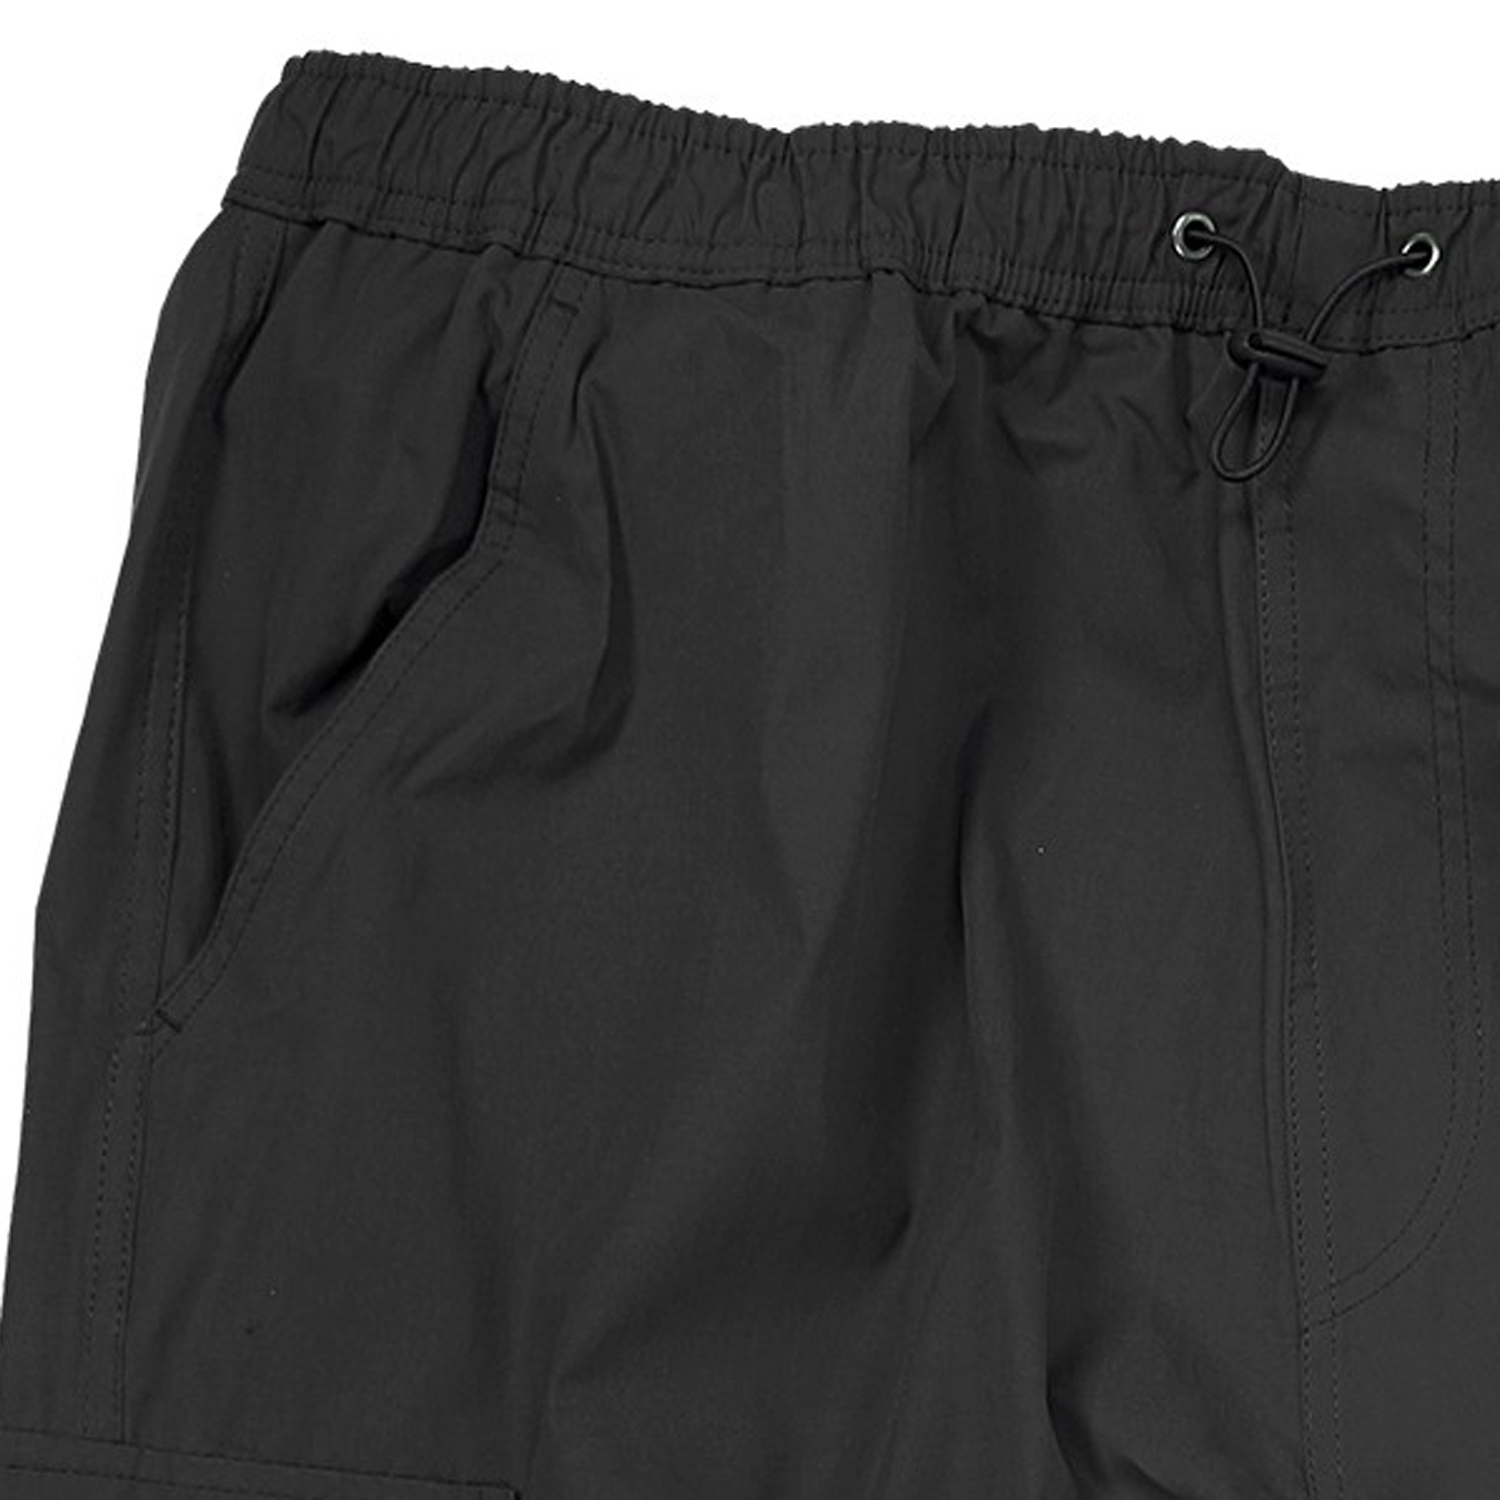 Detail Image to Zip-off-cargo-bermuda in black by Abraxas up to oversize 10XL